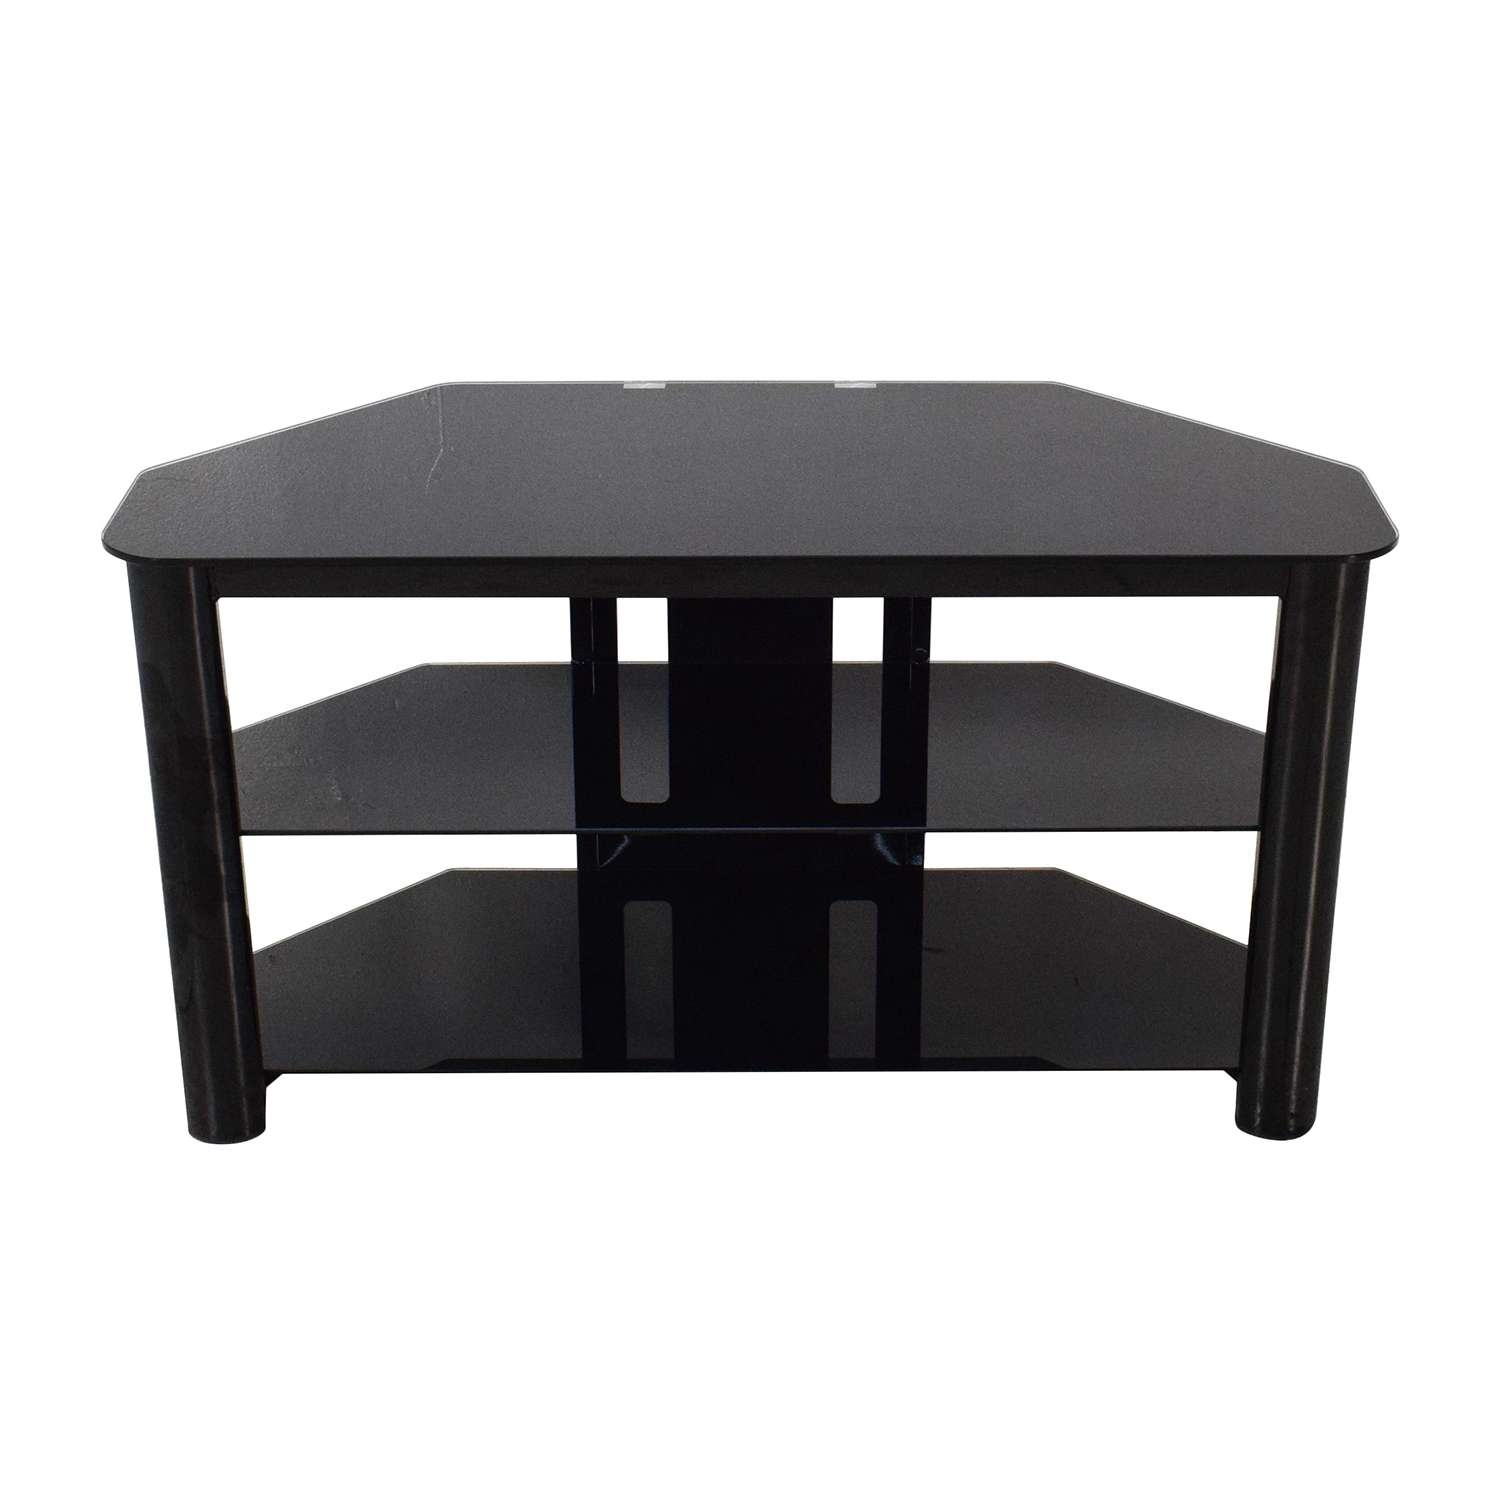 61% Off – Best Buy Best Buy Black Glass Tv Stand / Storage With Regard To Black Glass Tv Stands (View 8 of 15)